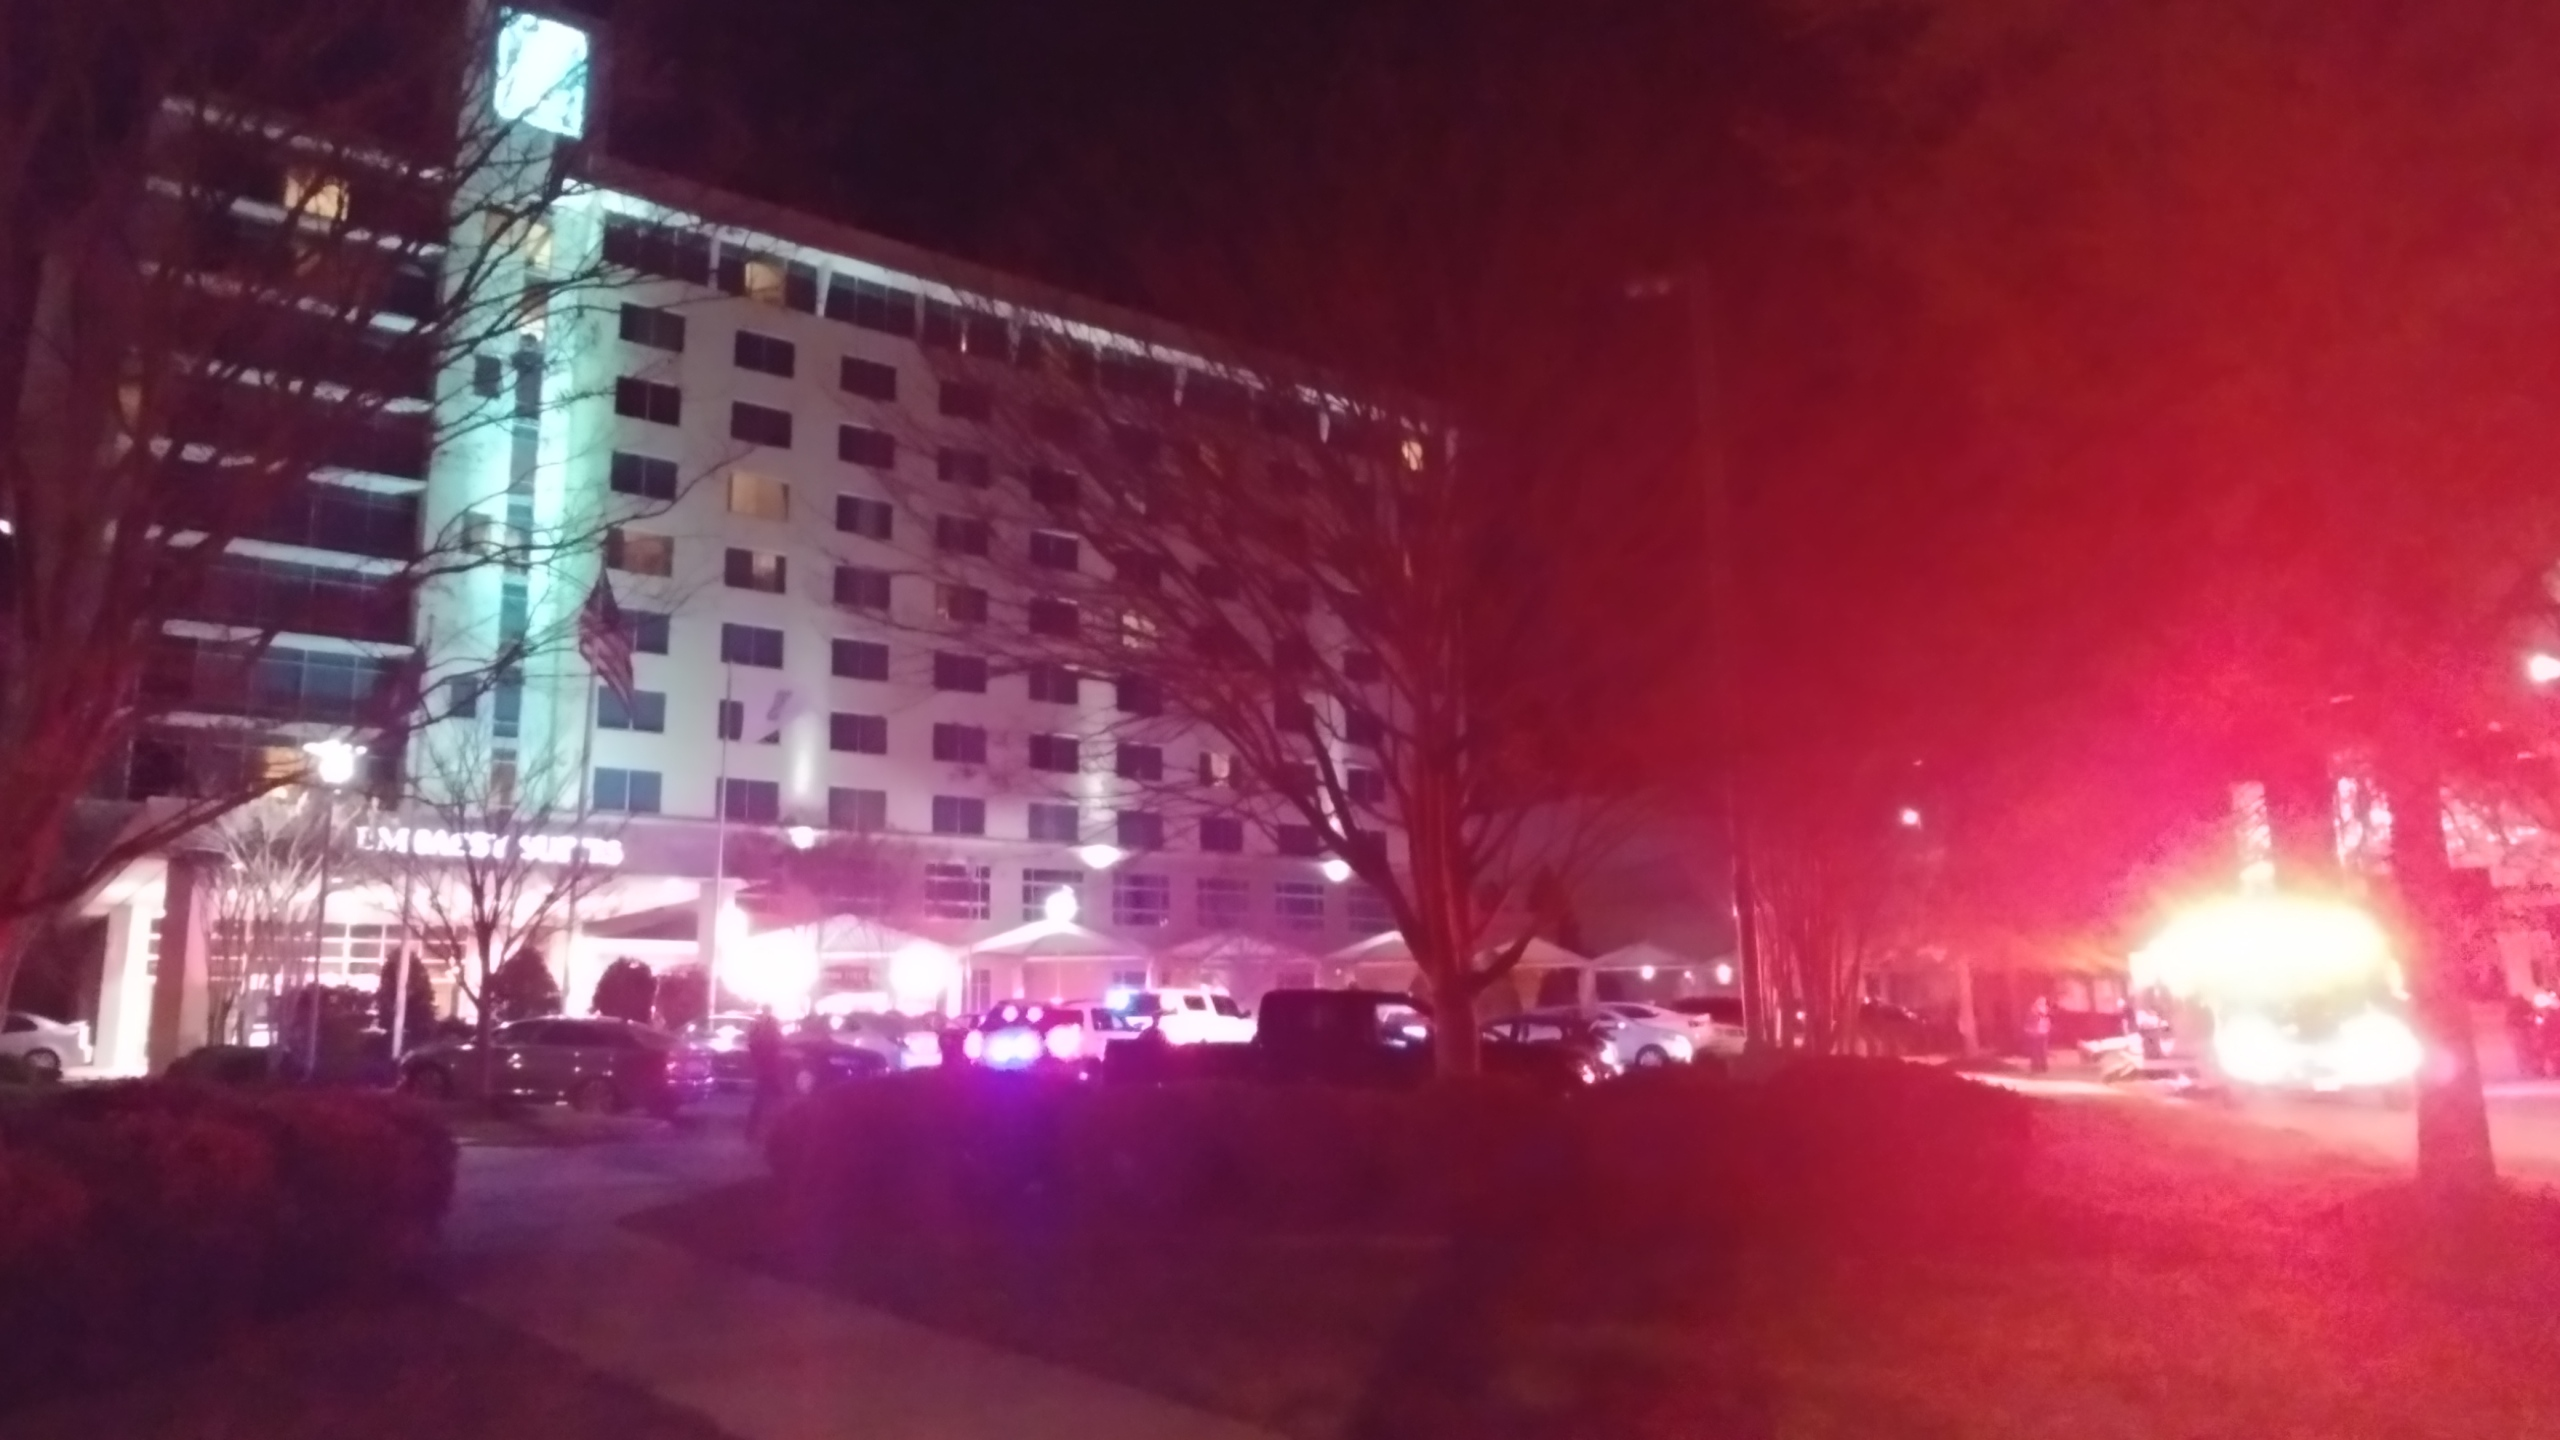 Embassy Suites fire